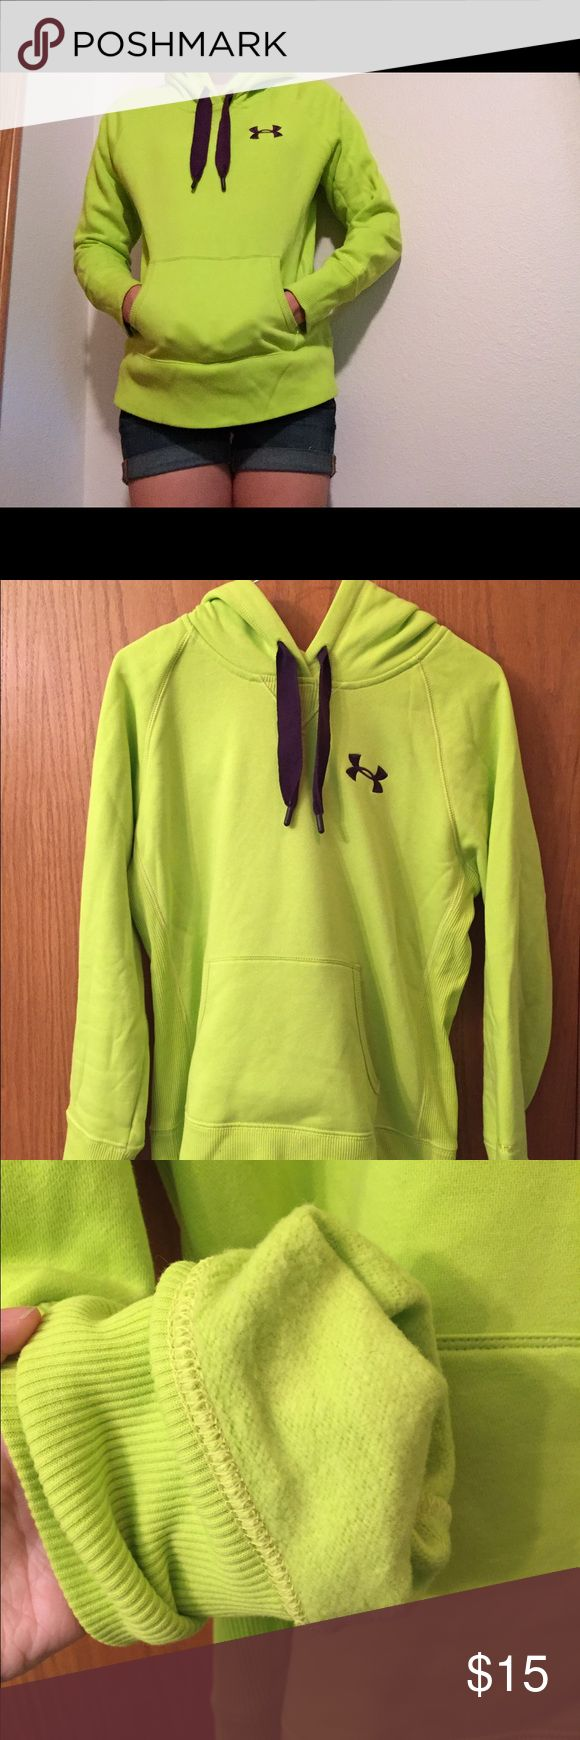 Under Armour neon green and purple hoodie Bright green and purple women's hoodie, size XS. Very comfy and cozy. Small mark on lower back, as shown in the picture. Only worn a couple of times Under Armour Tops Sweatshirts & Hoodies